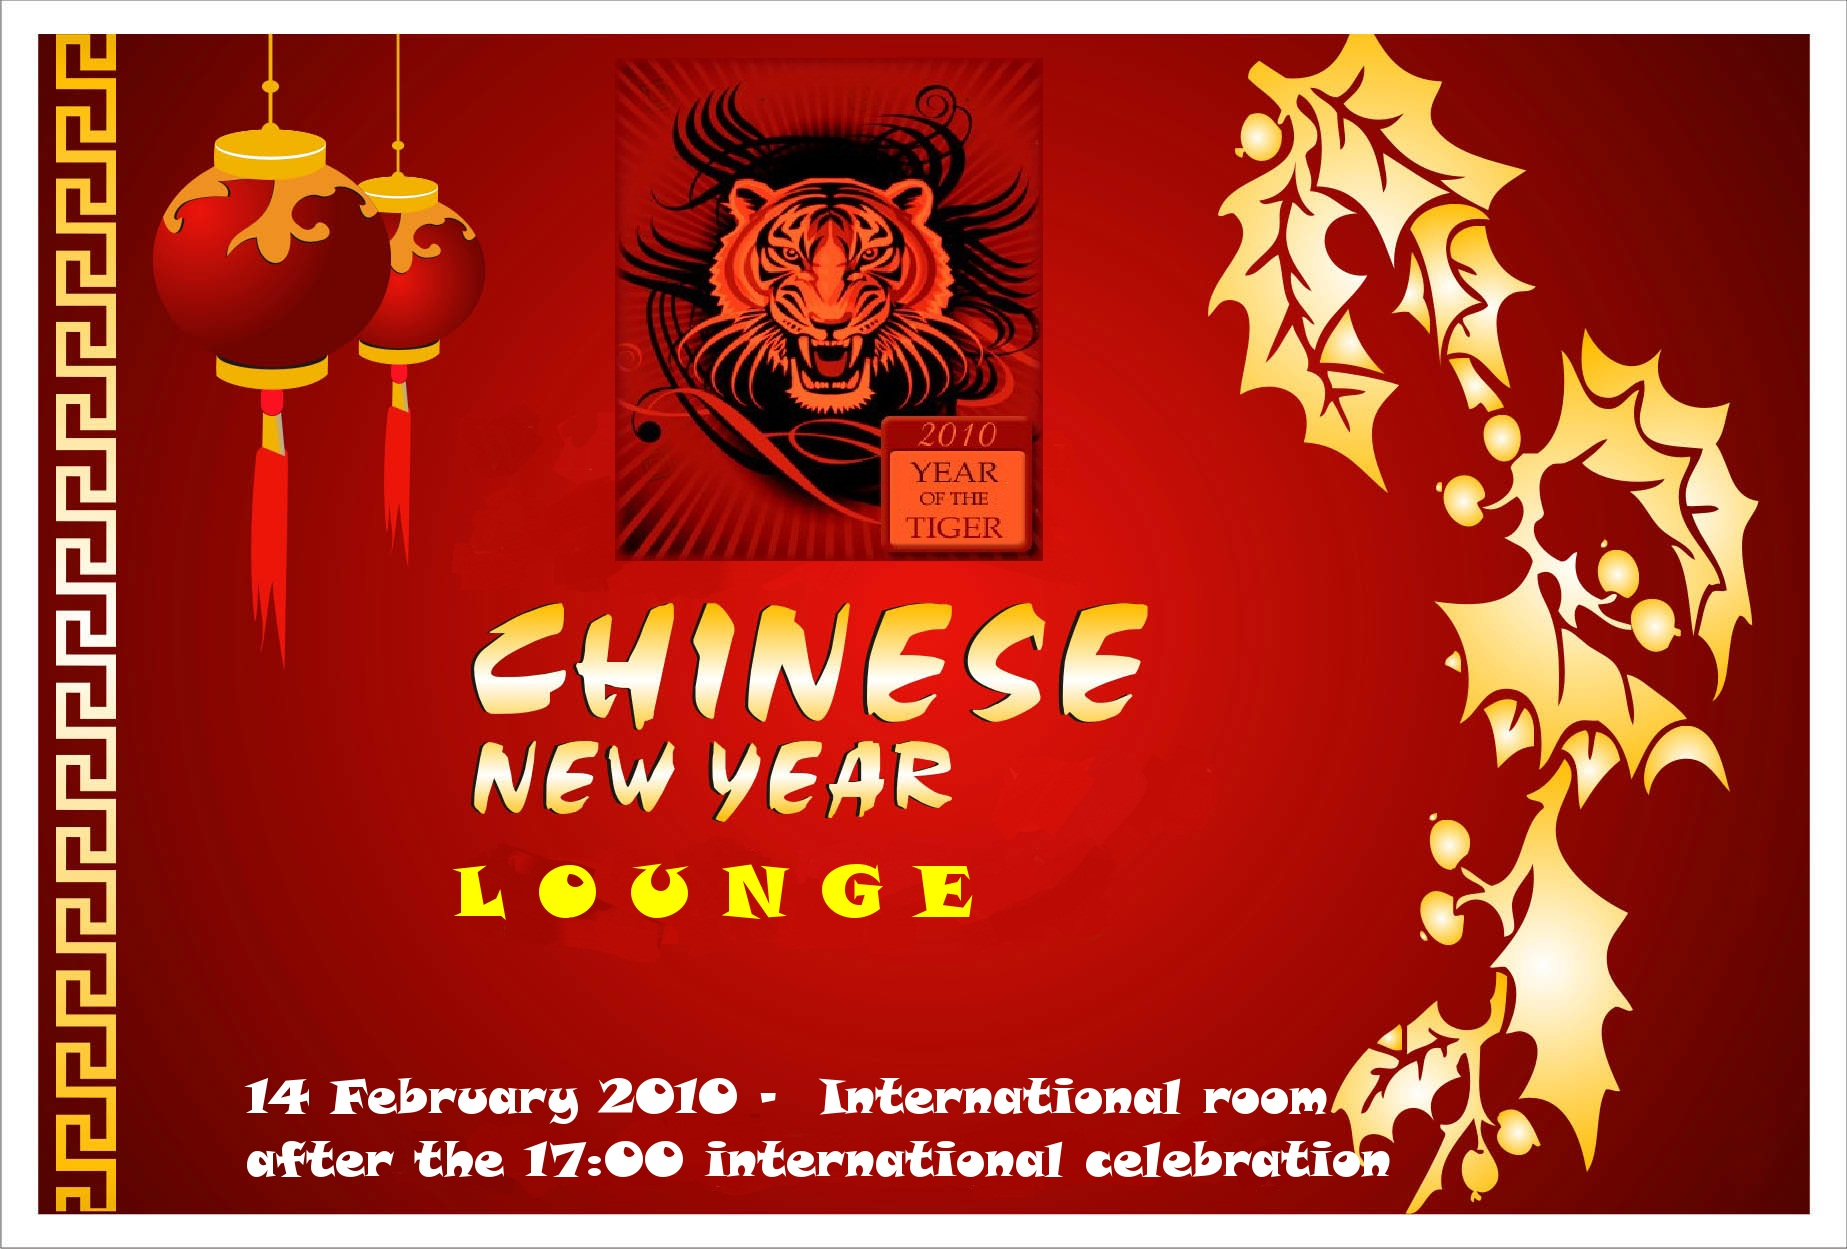 gold-chinese-new-year-Lounge.jpg